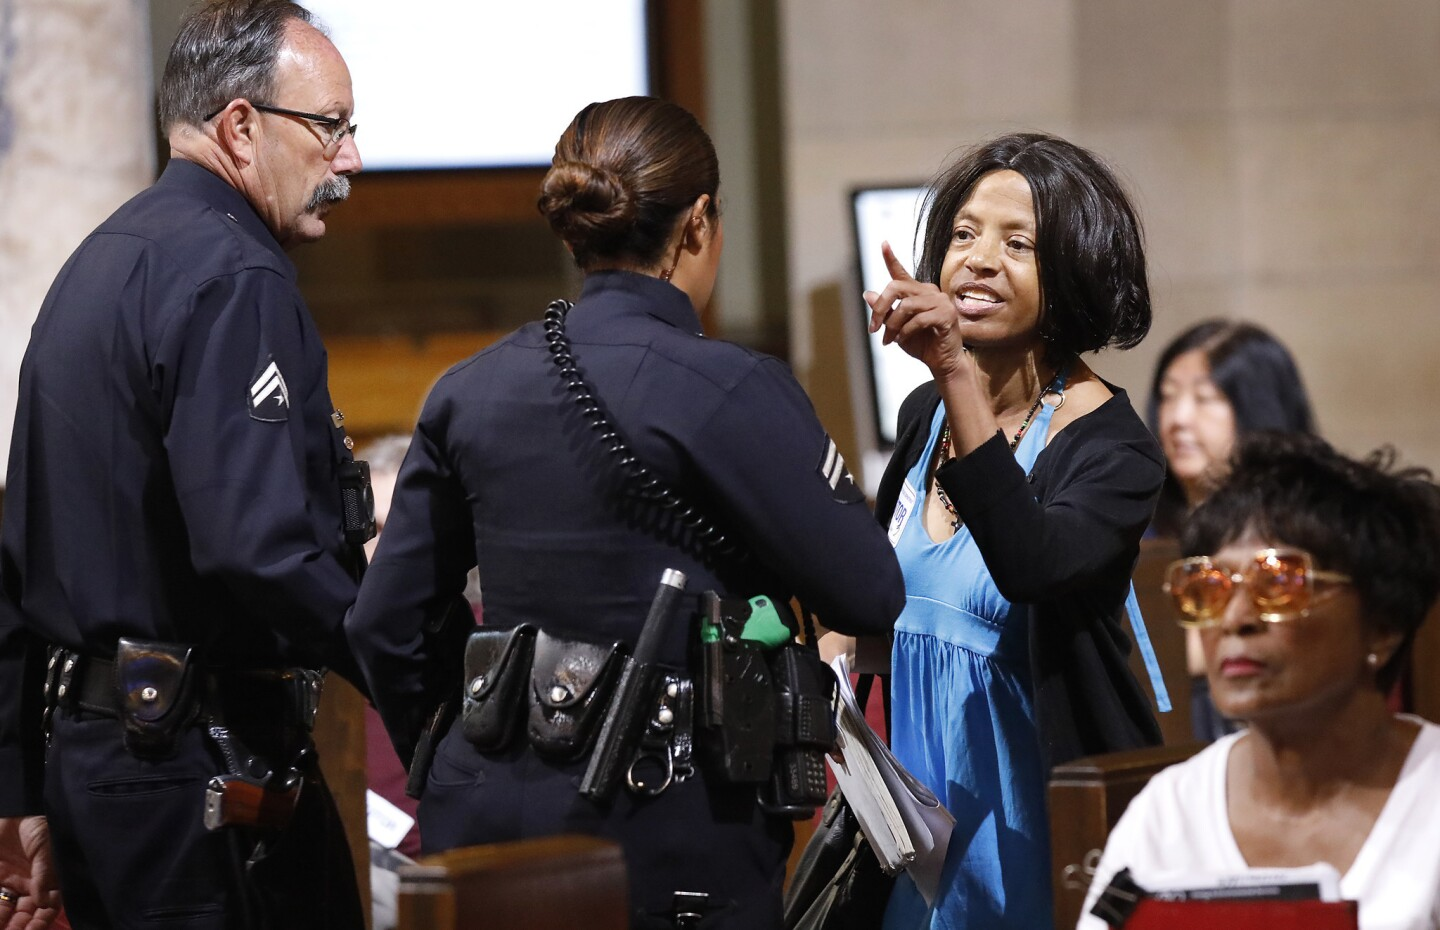 Yvonne Michelle Autry, right, is ejected during a City Council meeting.